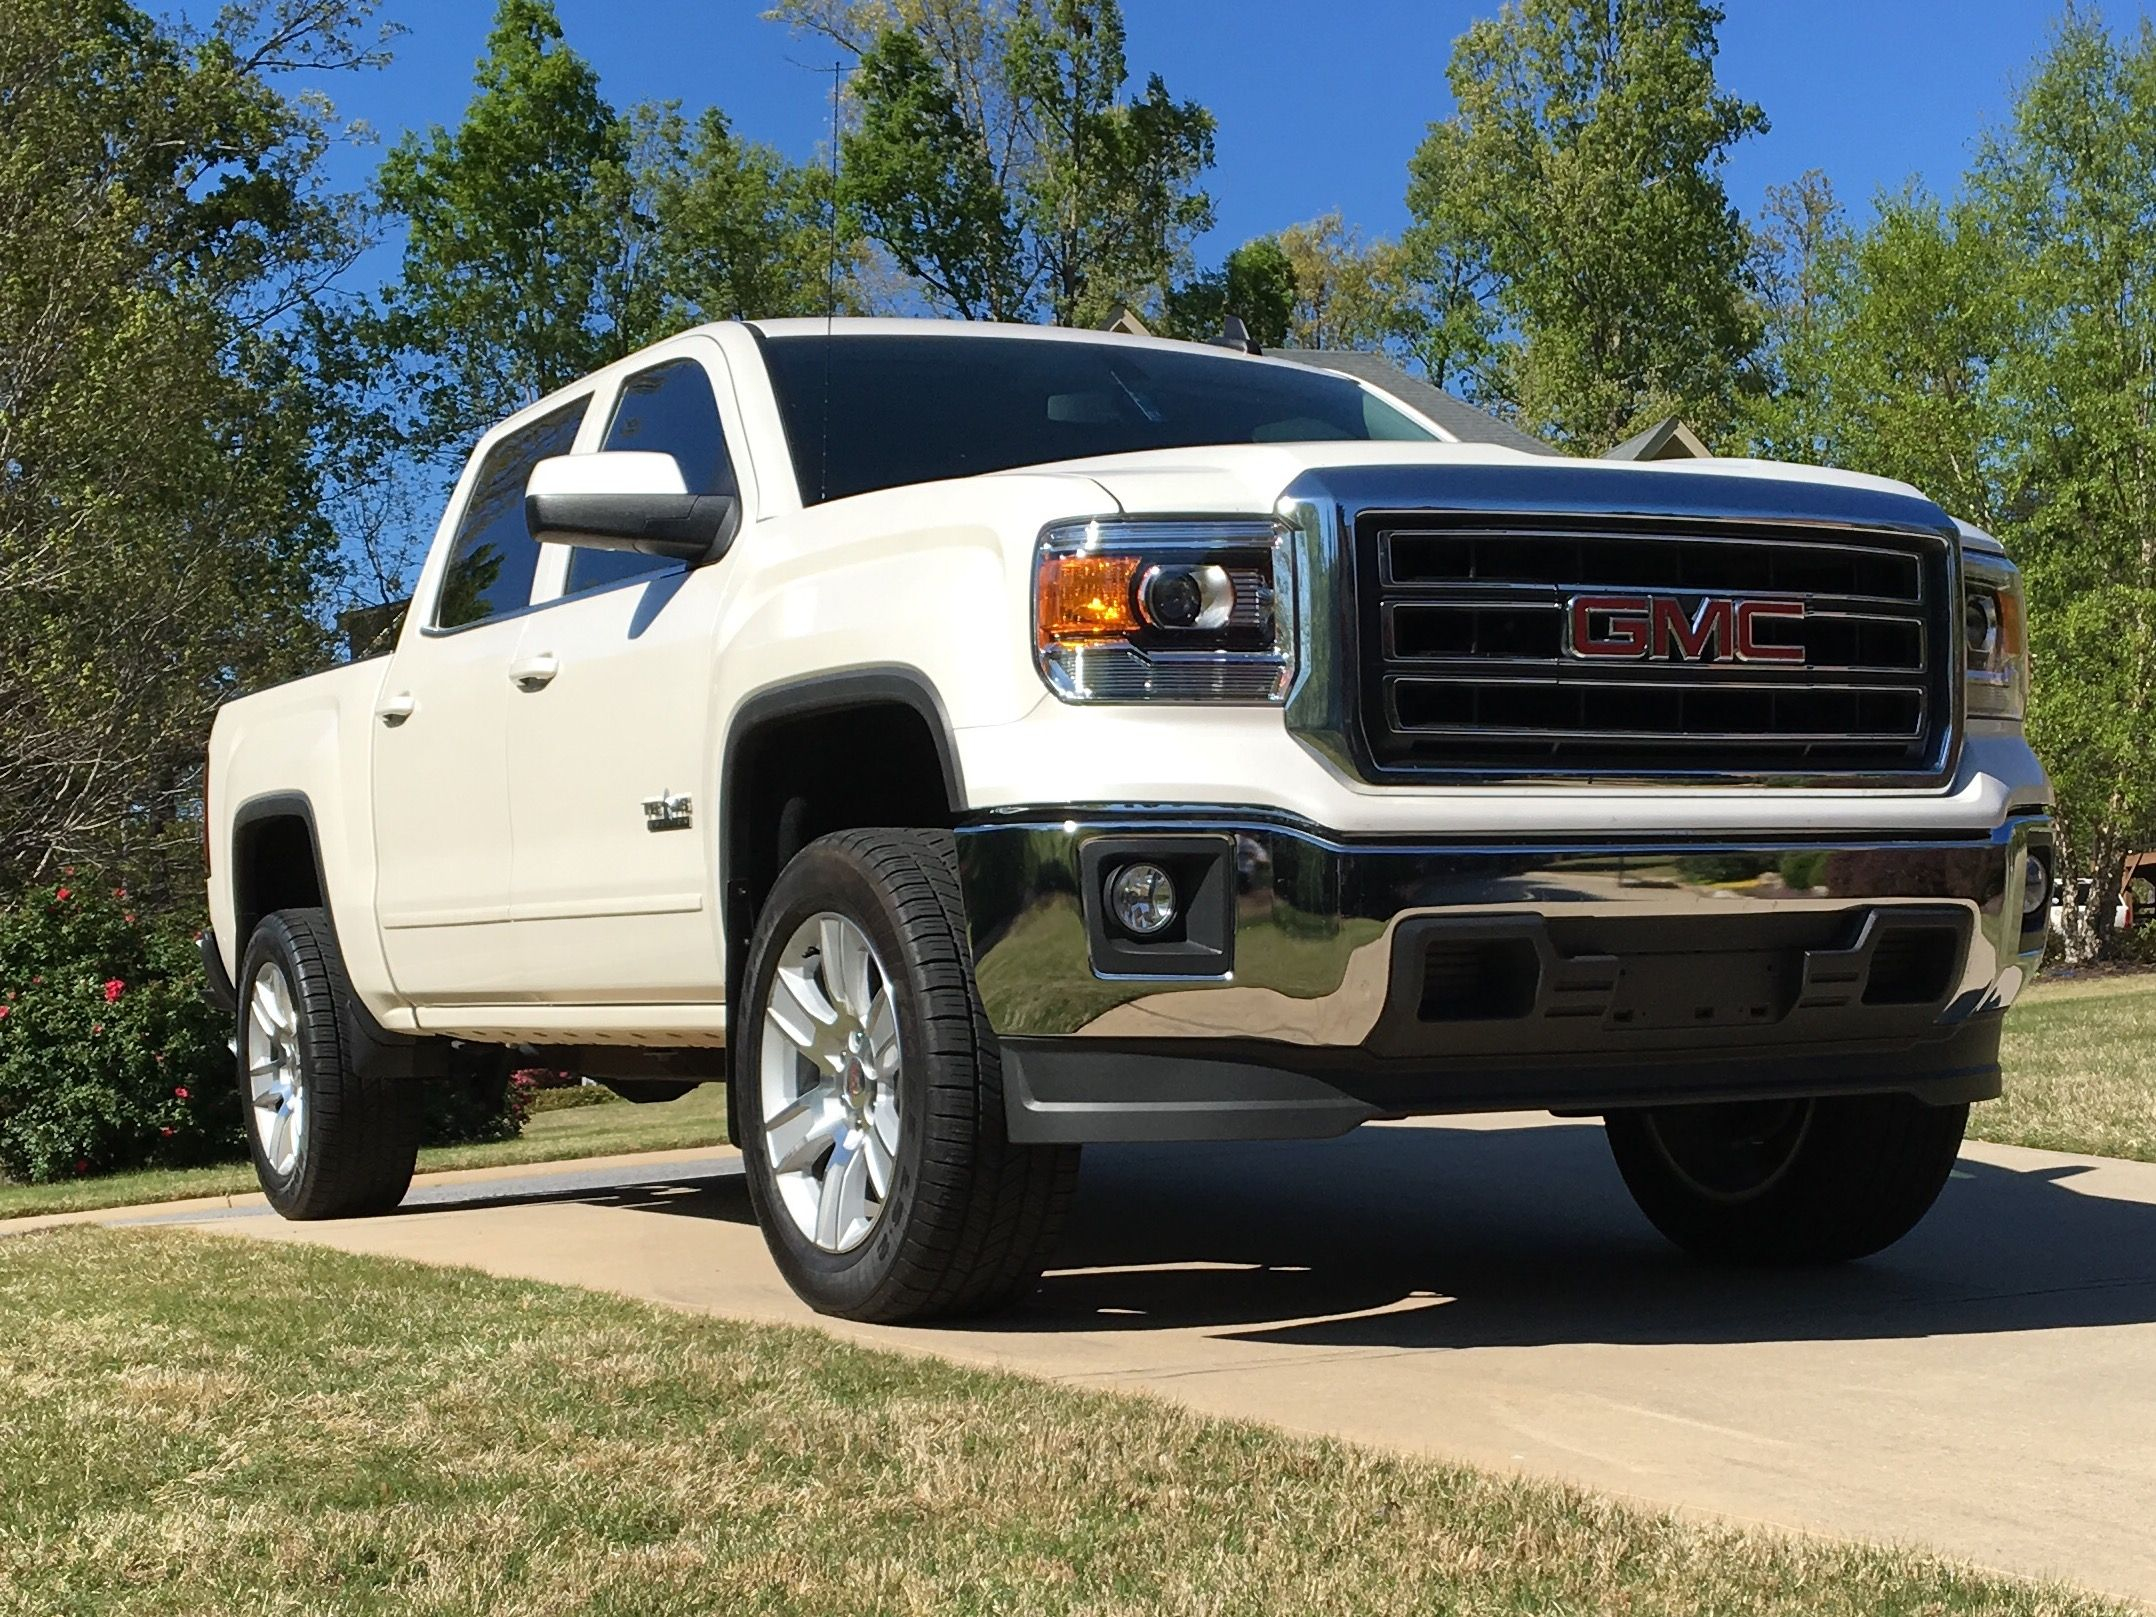 2015 Gmc Sierra Texas Edition 2 Leveling Kit And 1 Wheel